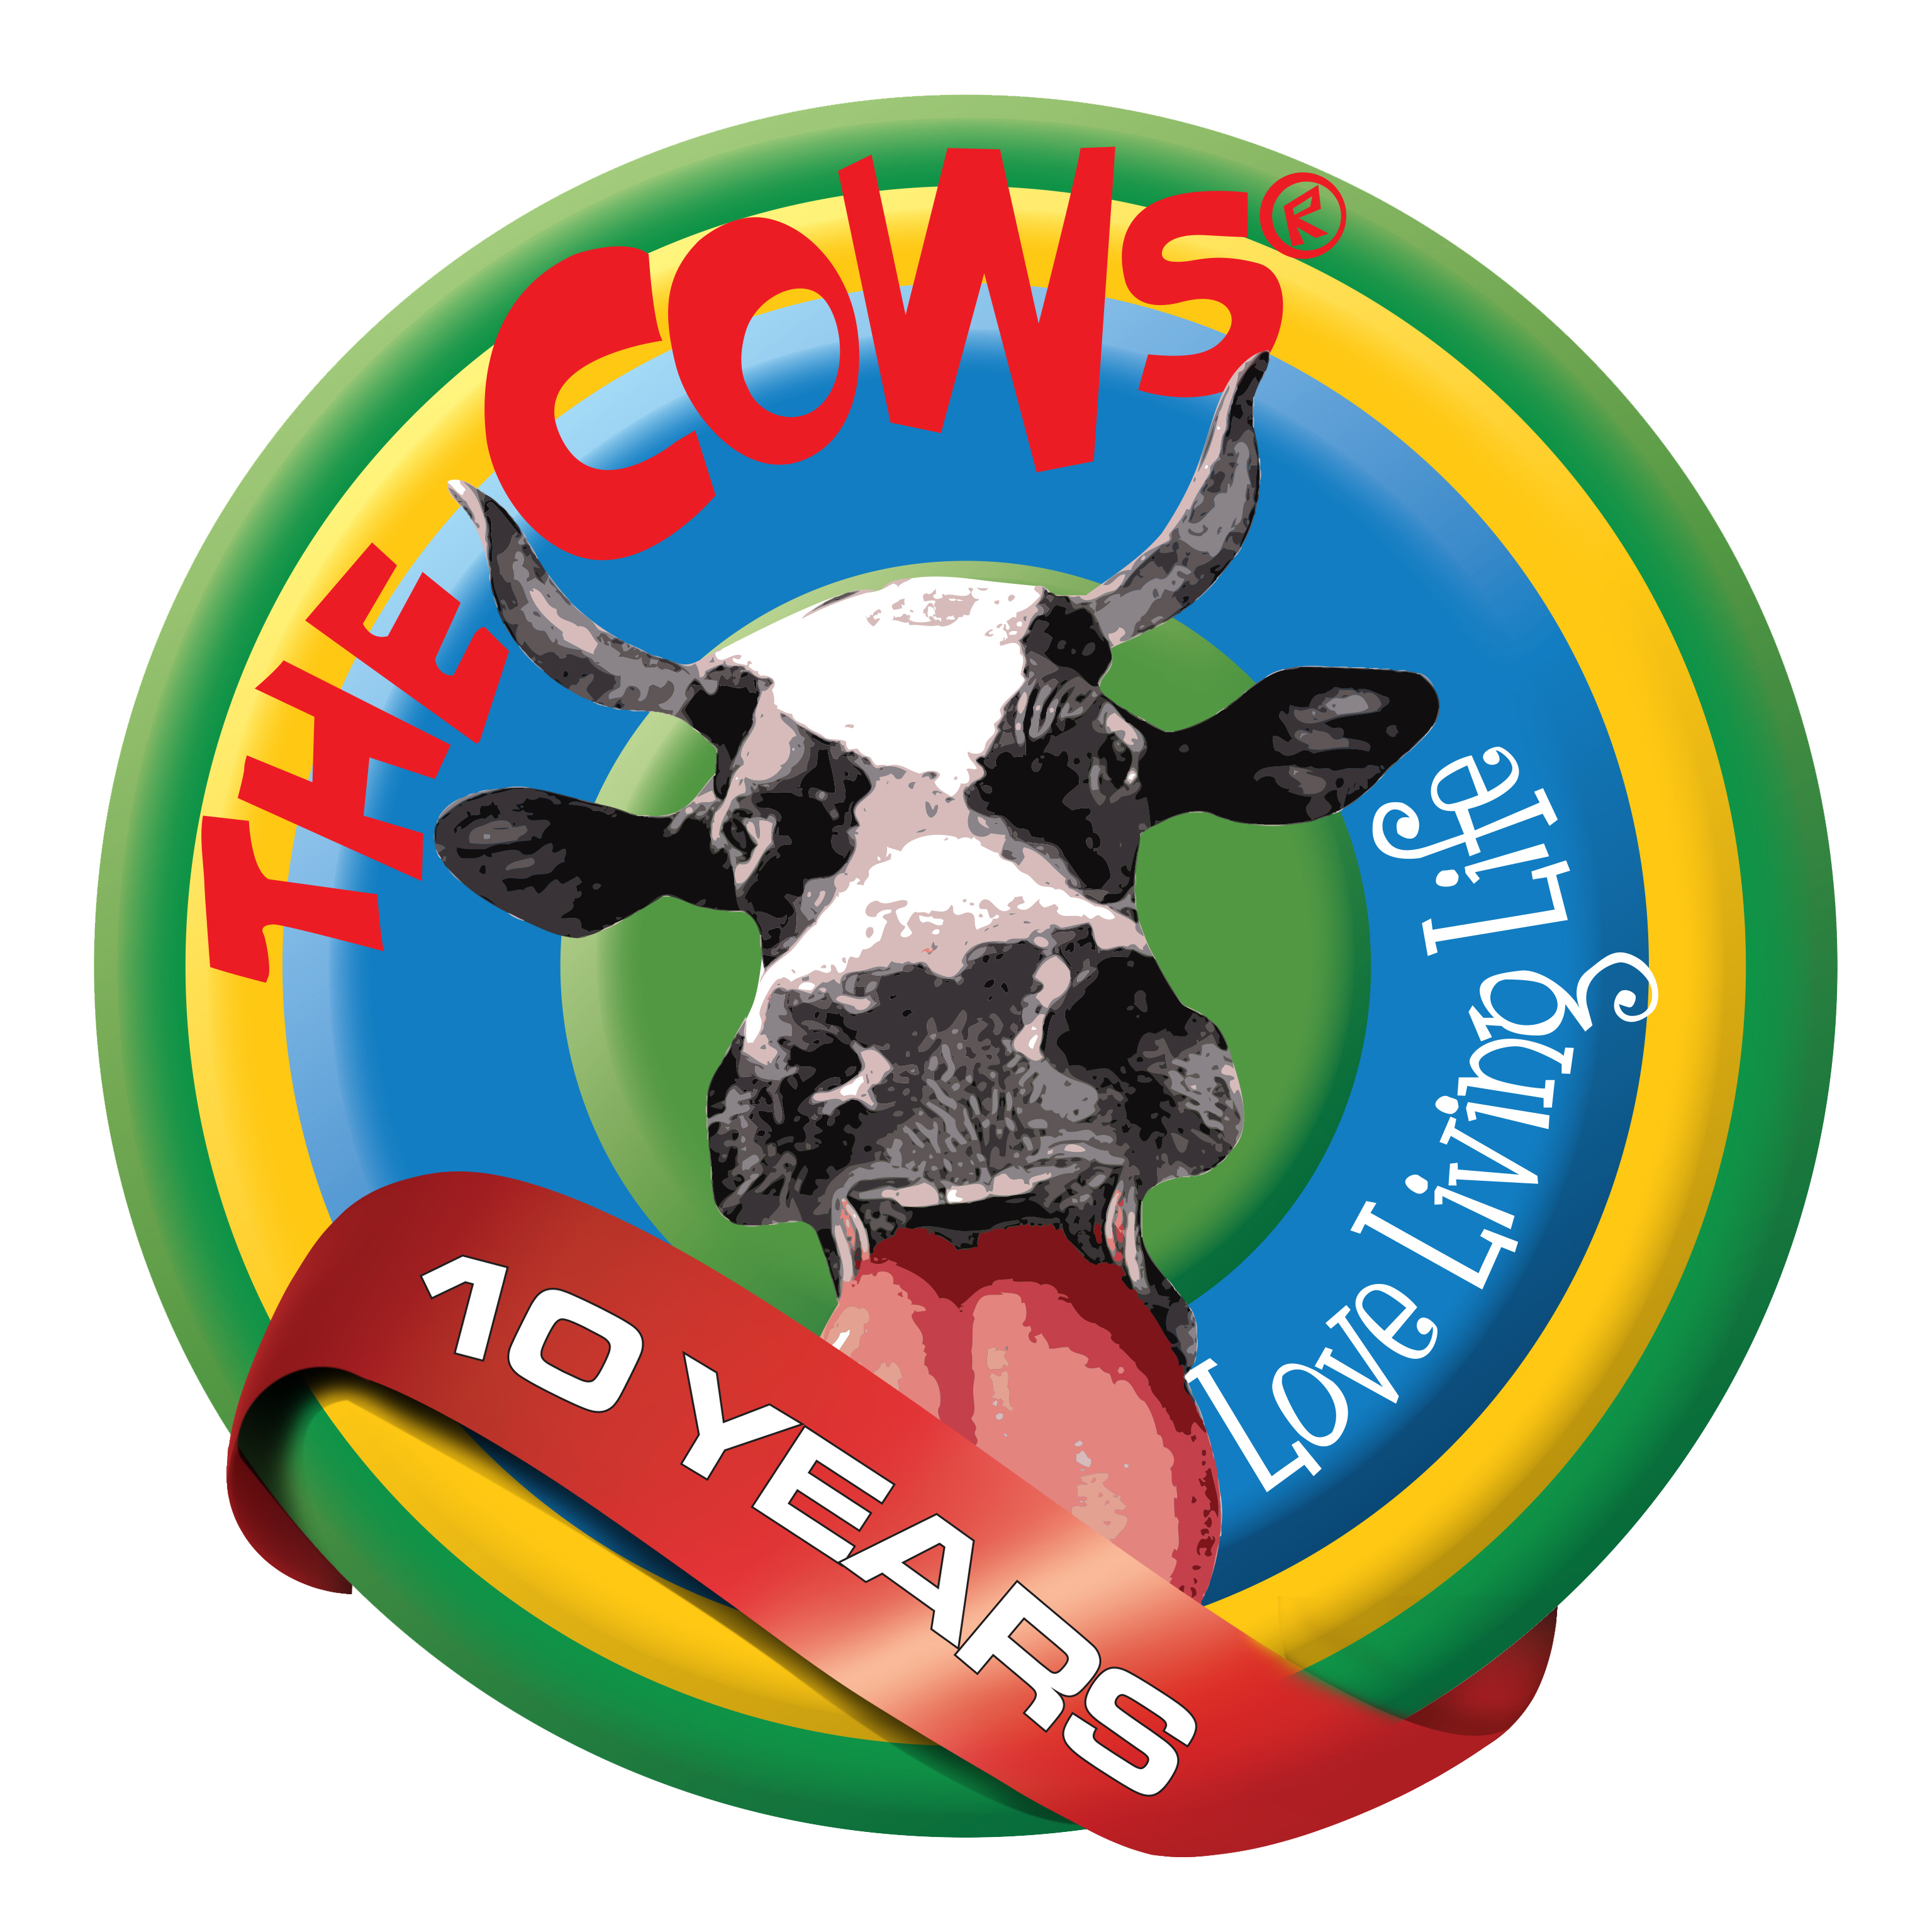 The Cows 10 Year Logo (1)